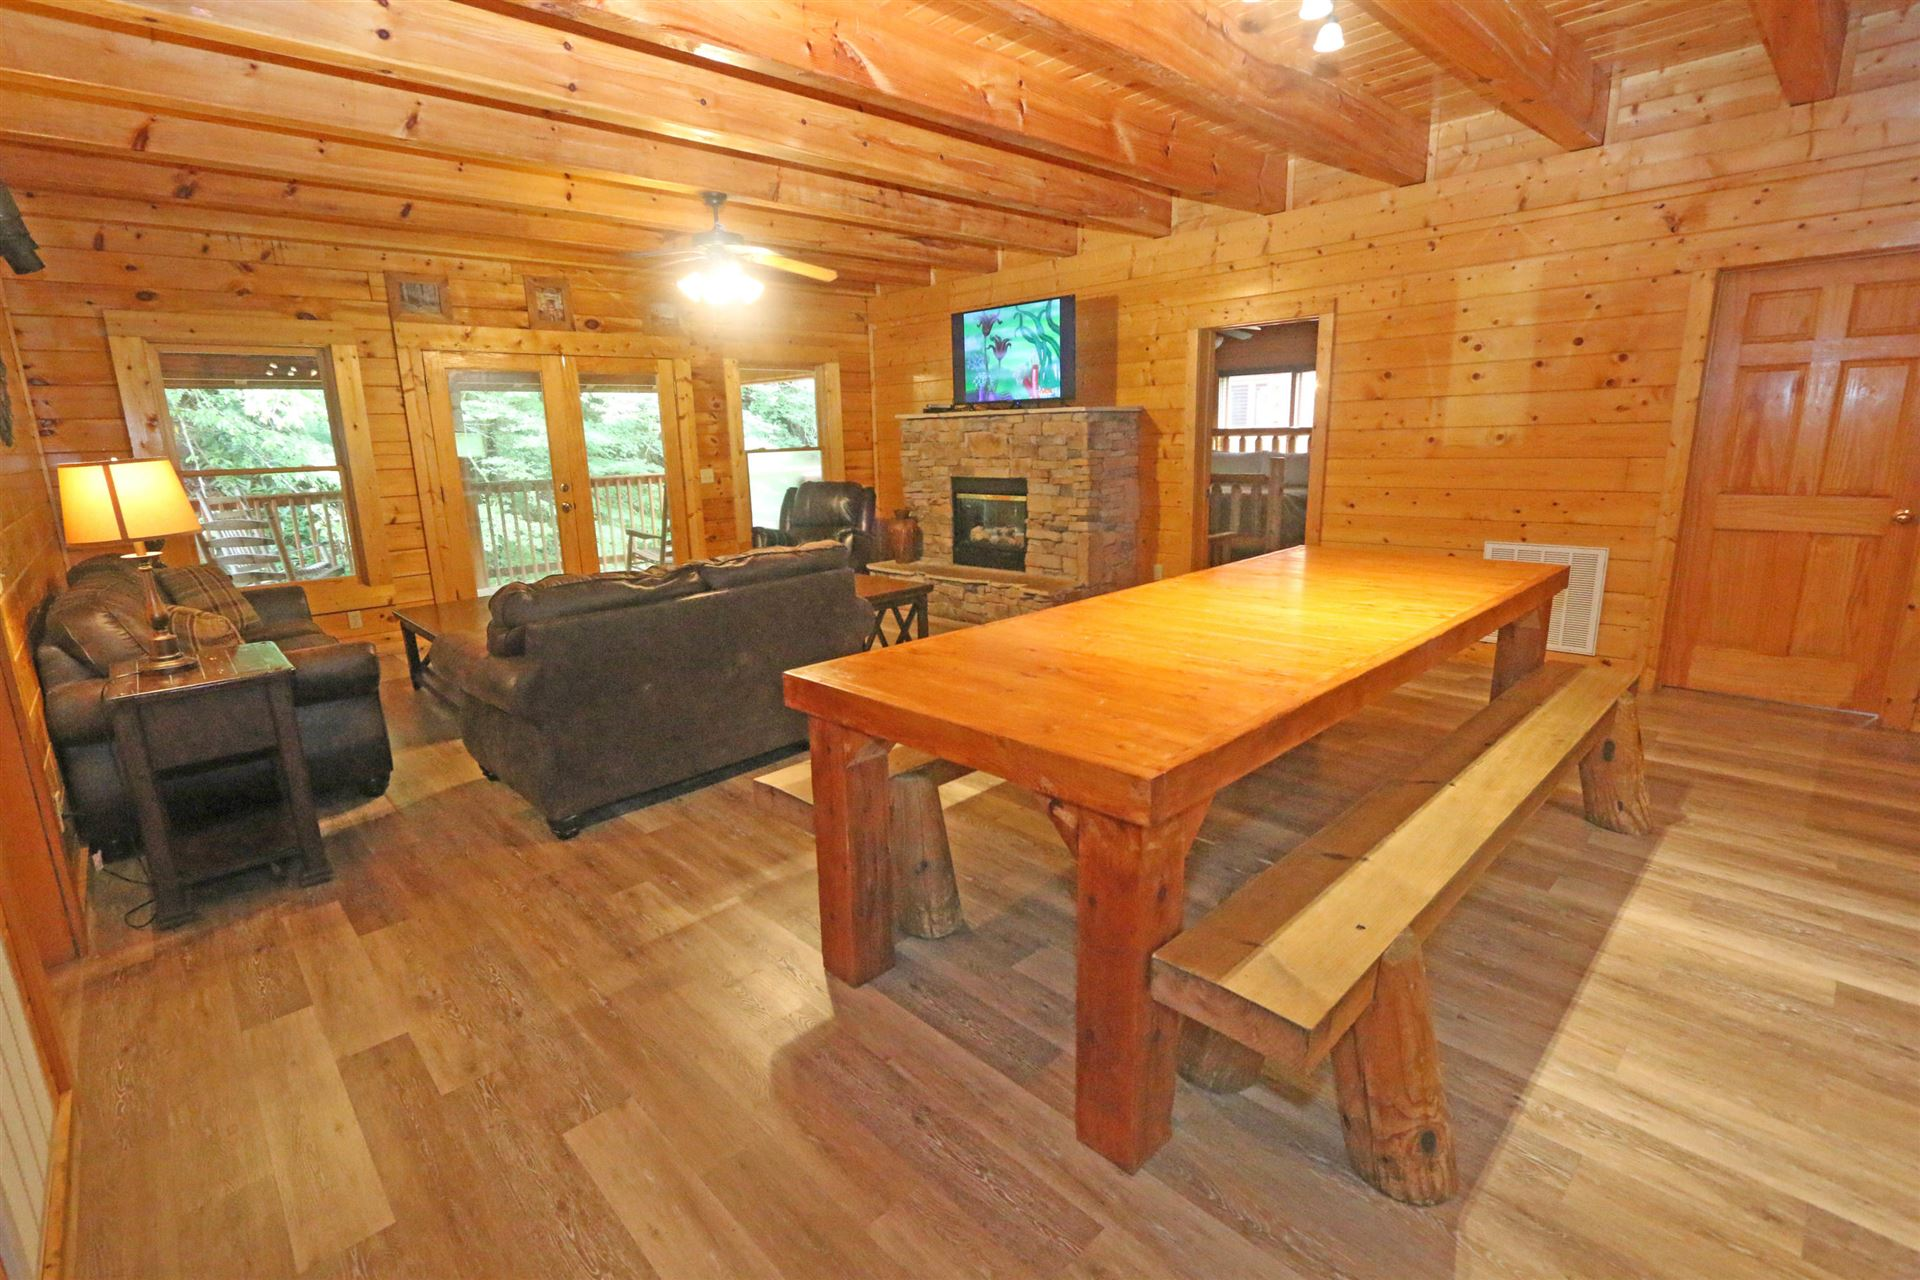 311 Caney Creek Rd Pigeon Forge Tn 37863 Mls 1153751 Listing Information Vylla Home